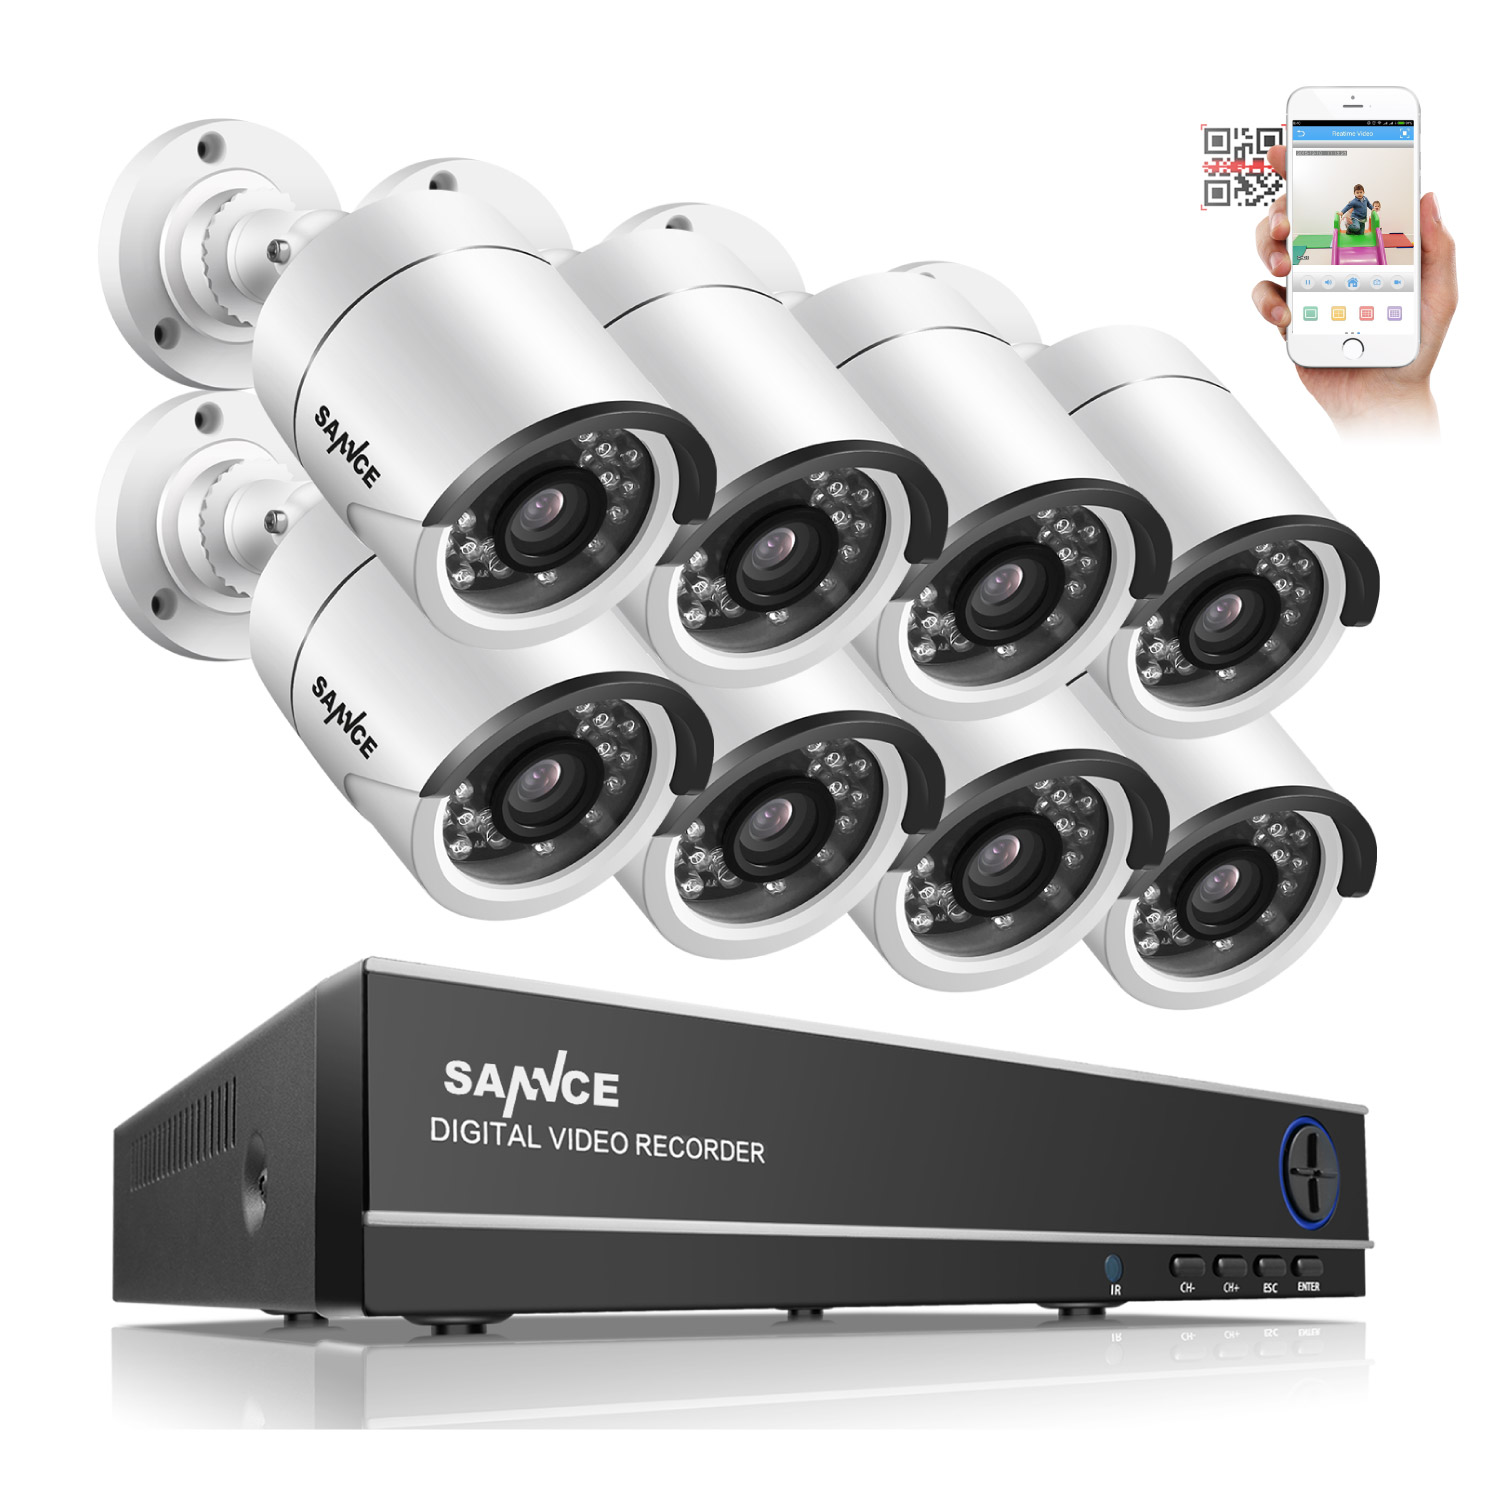 SANNCE 8CH AHD DVR 8PCS 1.0MP 720P HD IR Weatherproof Outdoor CCTV Camera System Home Security Kit Surveillance Kits Email Alert sannce 16ch 1080n hd dvr ahd hdmi cctv 8 pcs outdoor ir cut home security camera system 16 channel surveillance kit 2tb hdd